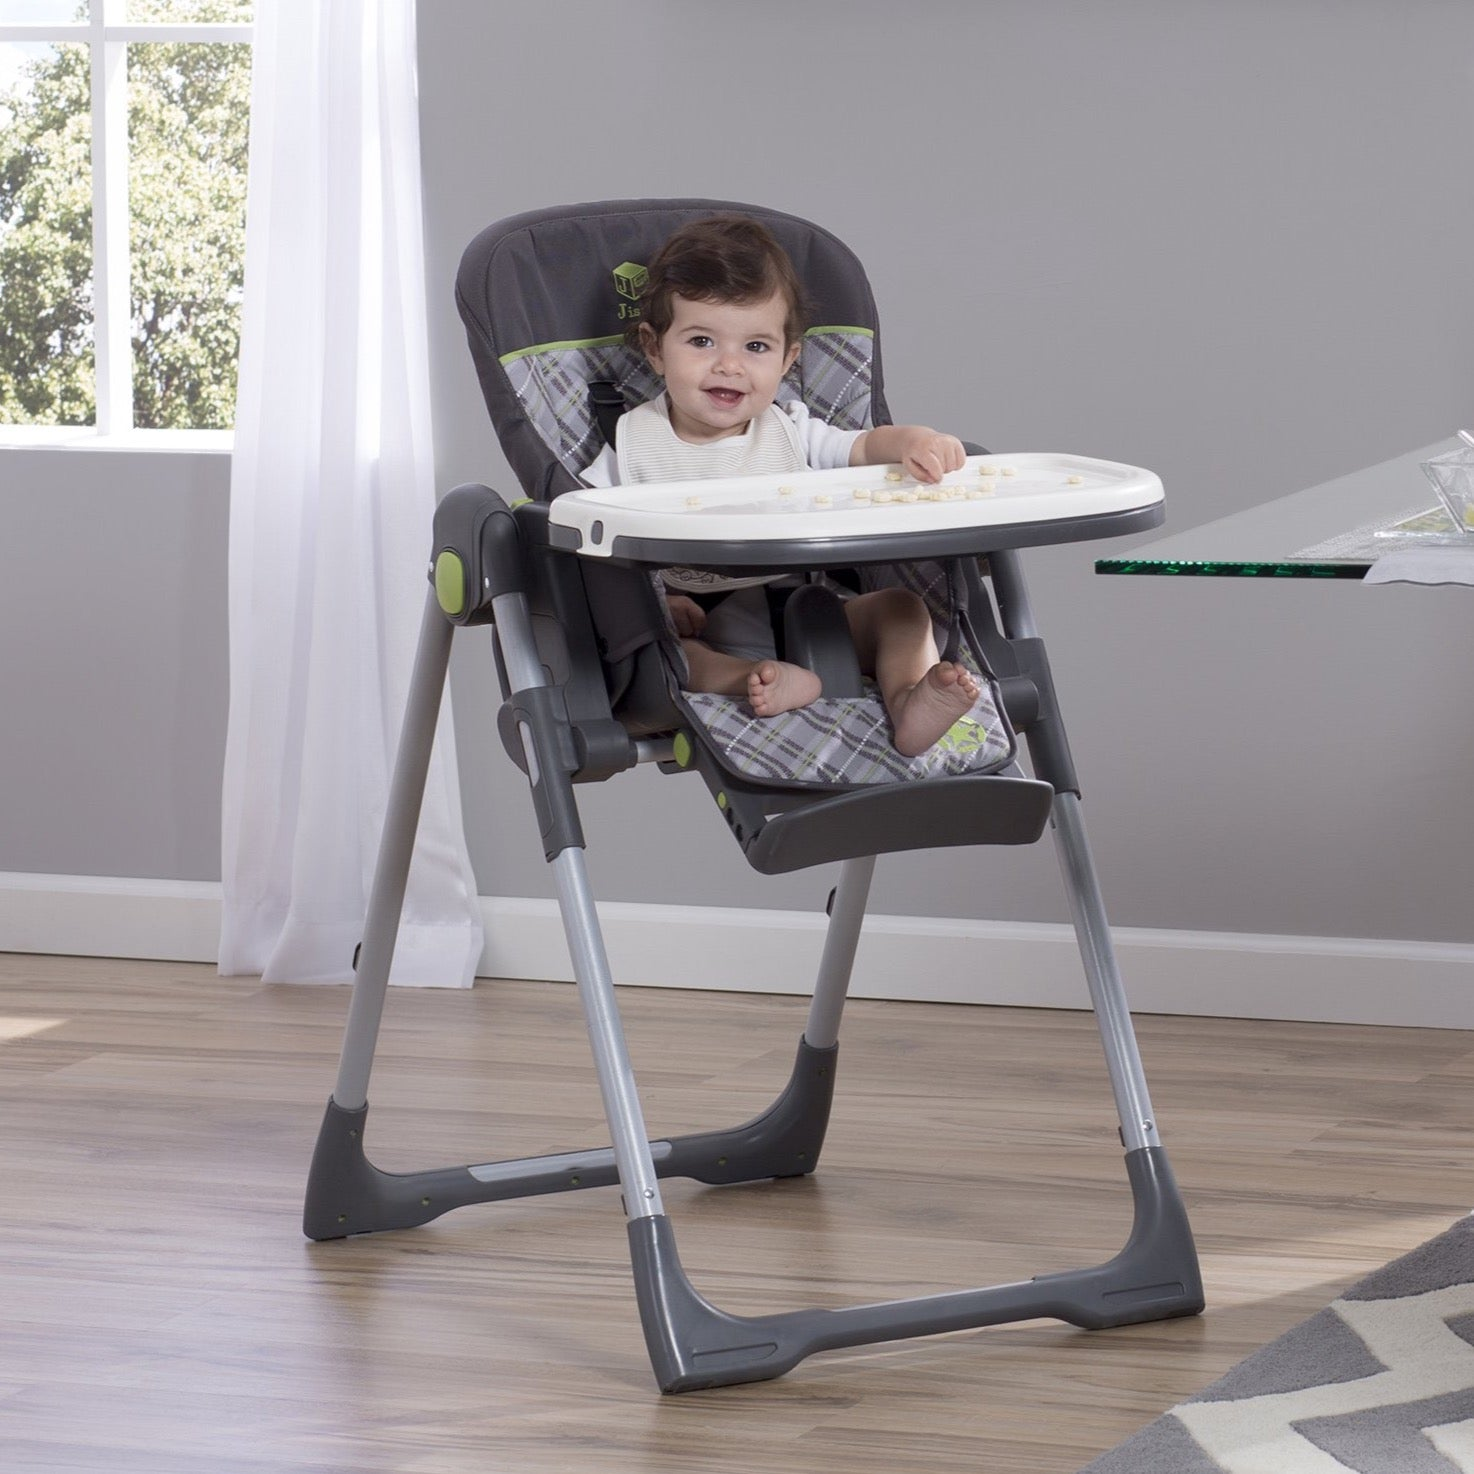 Jeep Classic Convertible High Chair for Babies and Toddlers